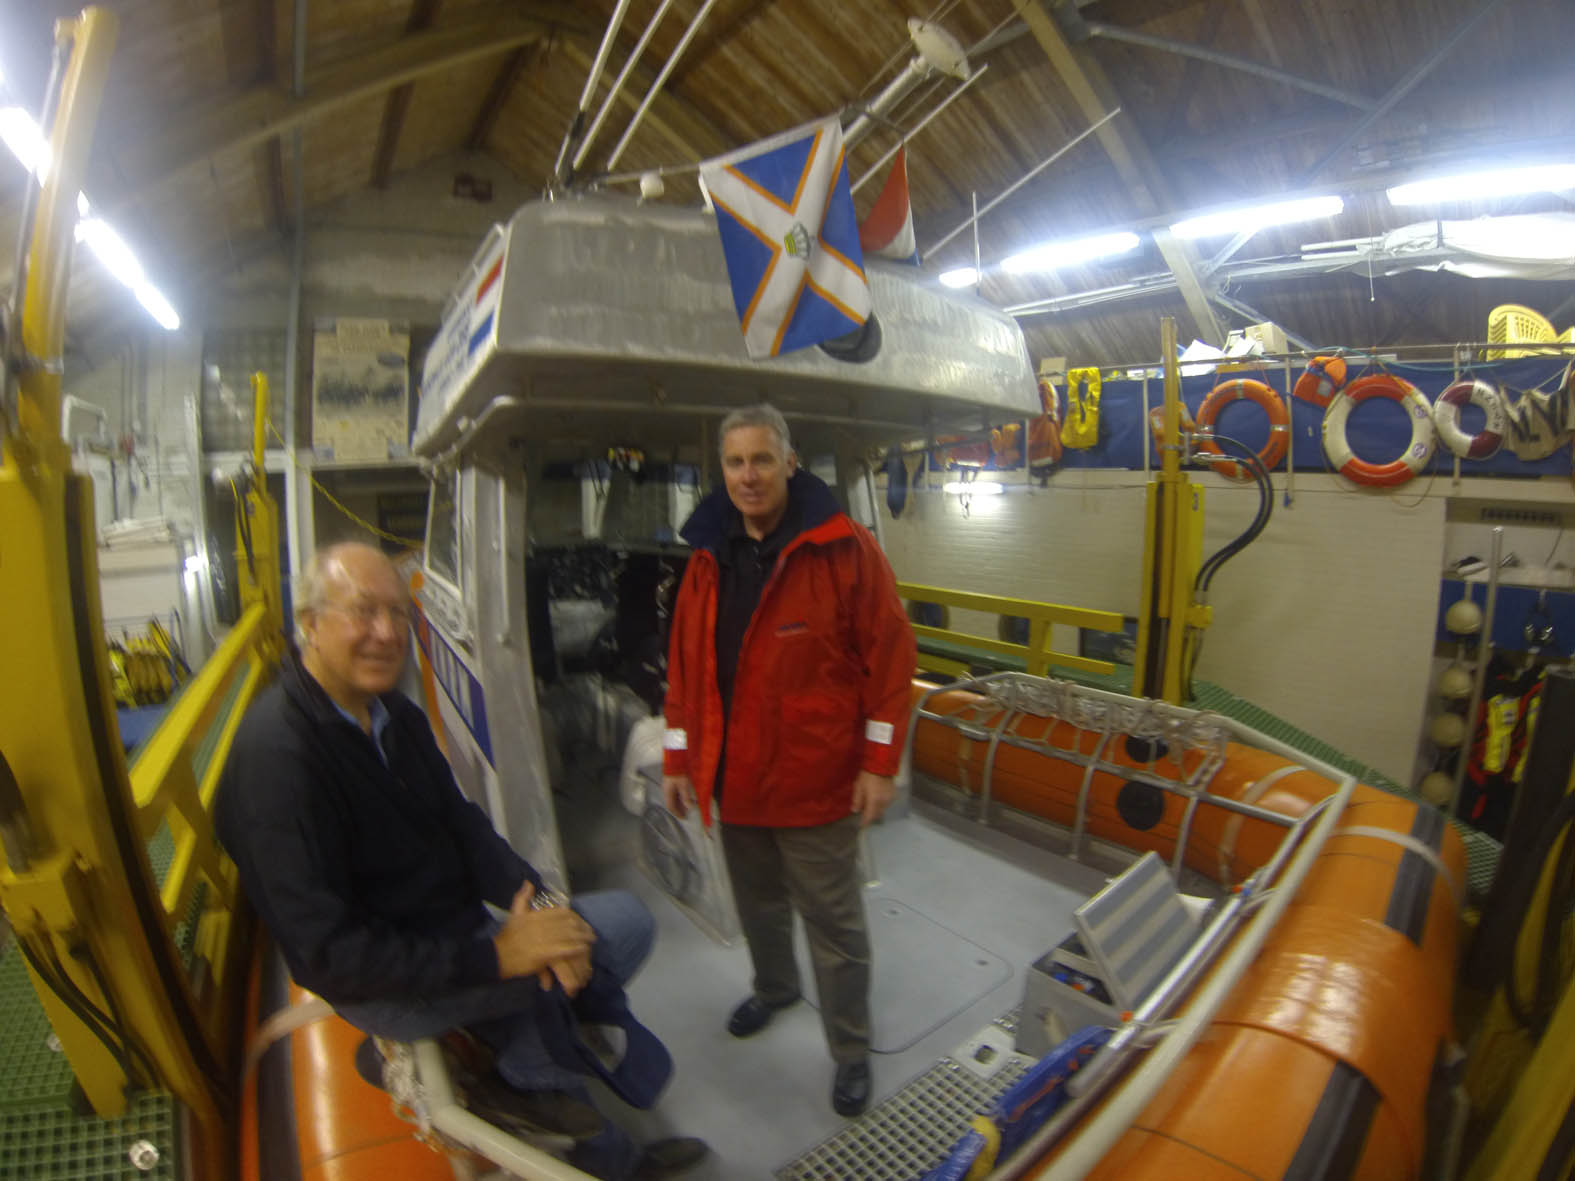 KNRM volunteer and Senior International Advisor Search and Rescue, Henk Kok hosted Cleeve at the  KNRM lifeboatstation.